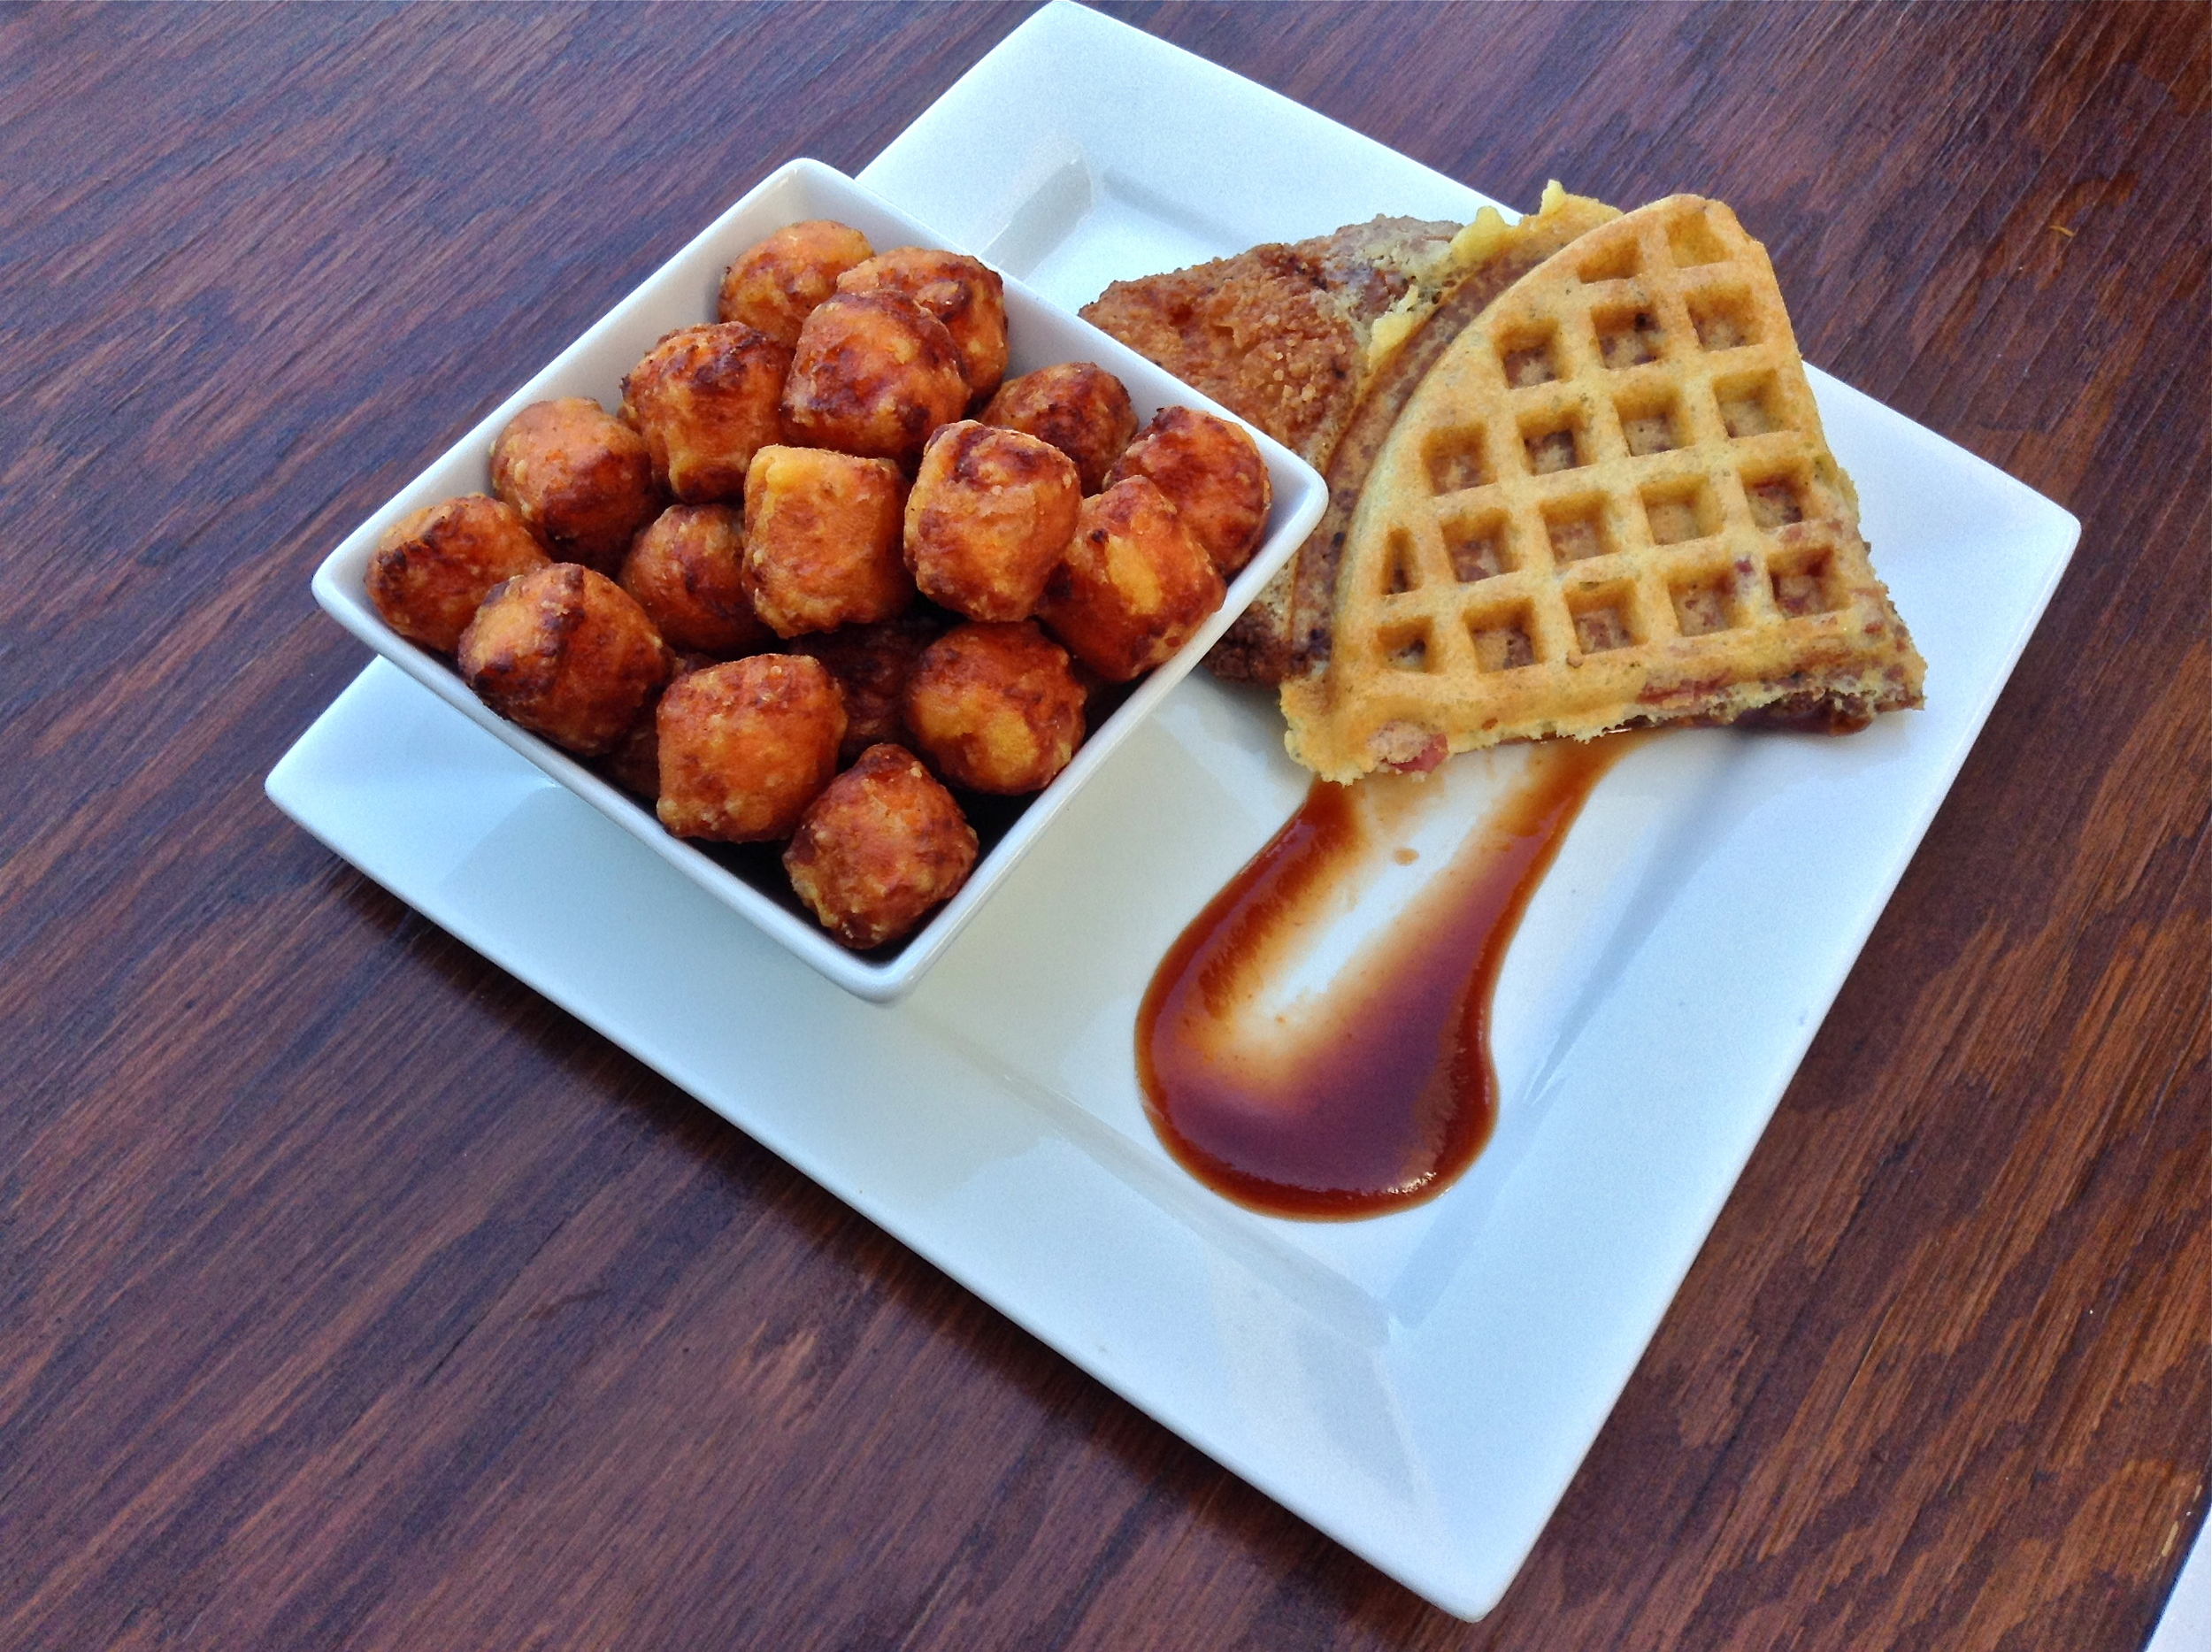 Jalapeño Bacon Fried Chicken and Waffle